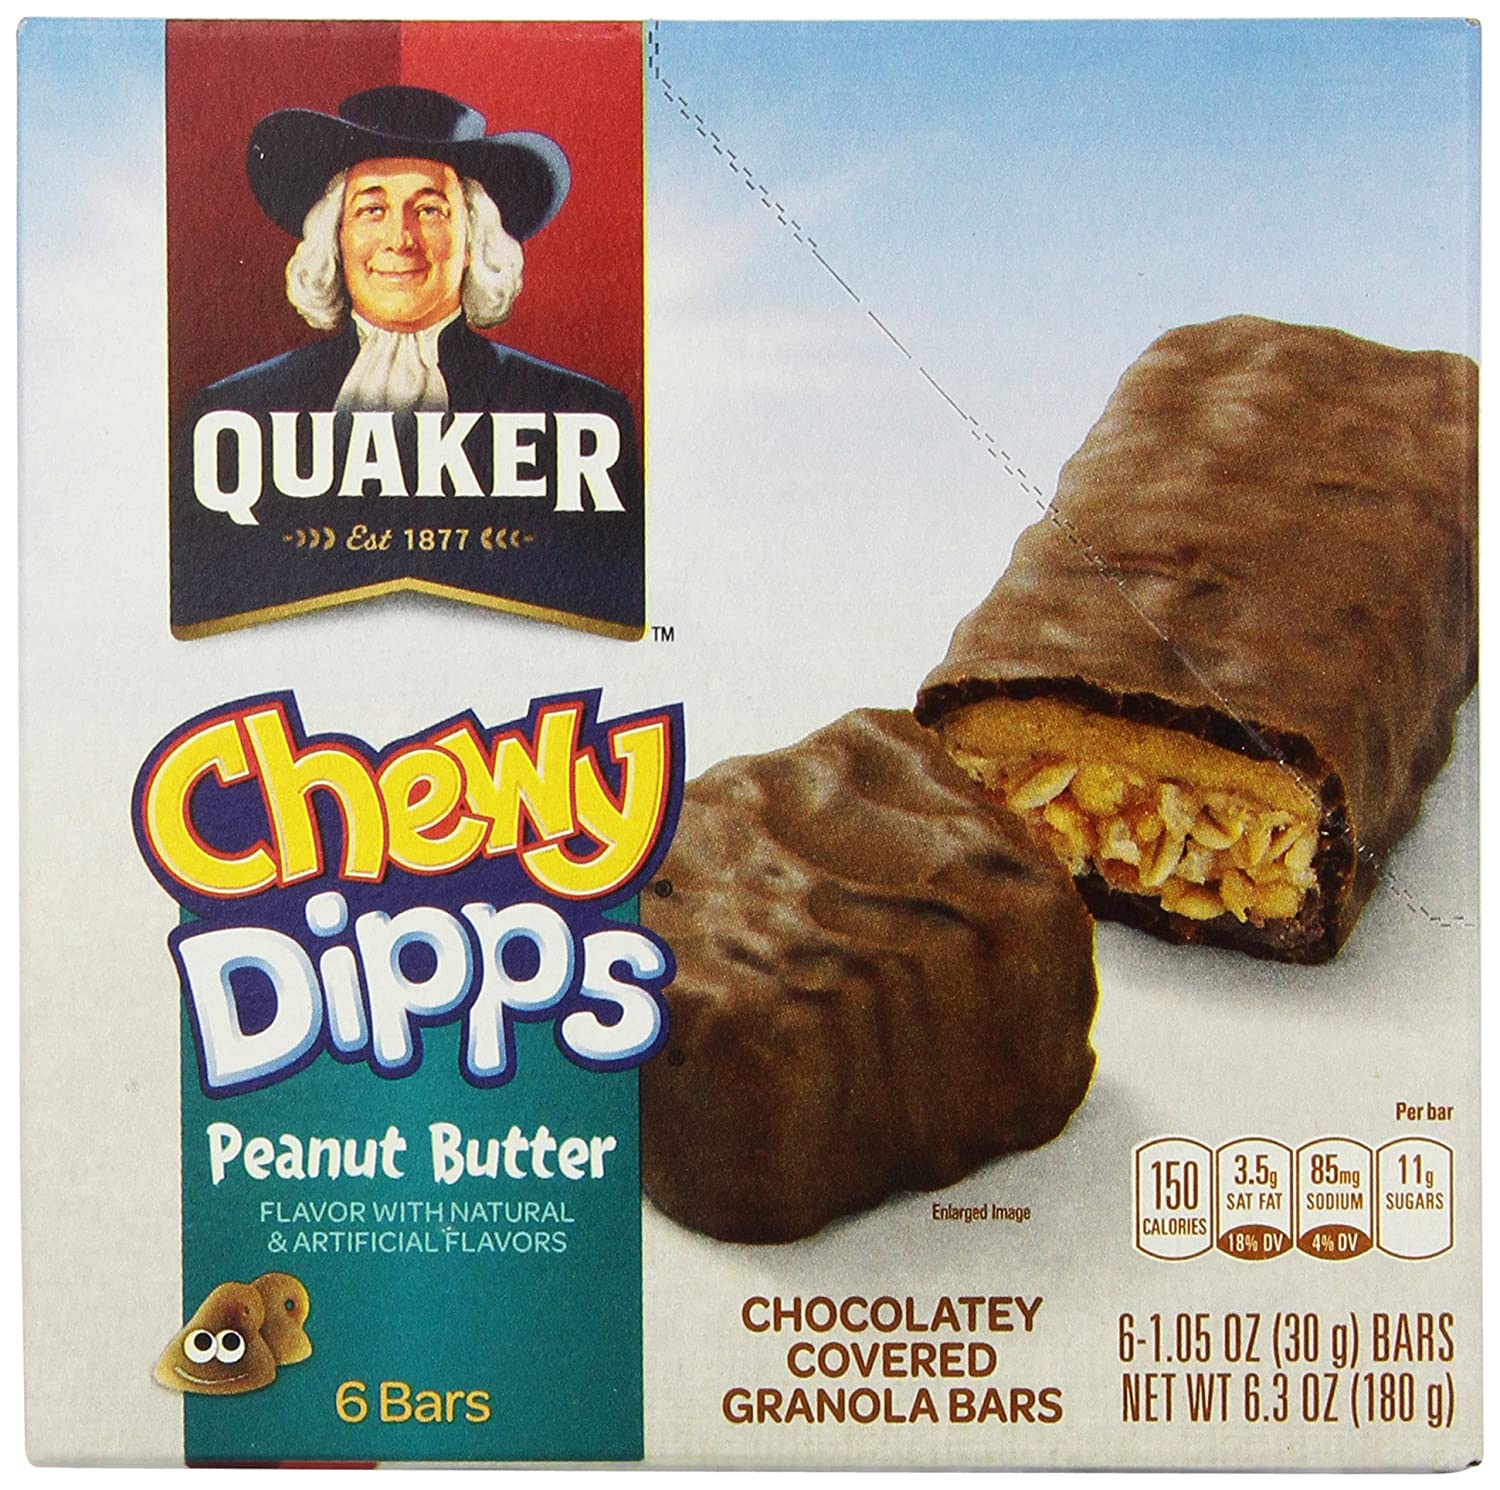 Quaker Peanut Butter Chewy Dipps Granola Bars,1.05 oz bars 6 Bars per Pack (Pack of 6)